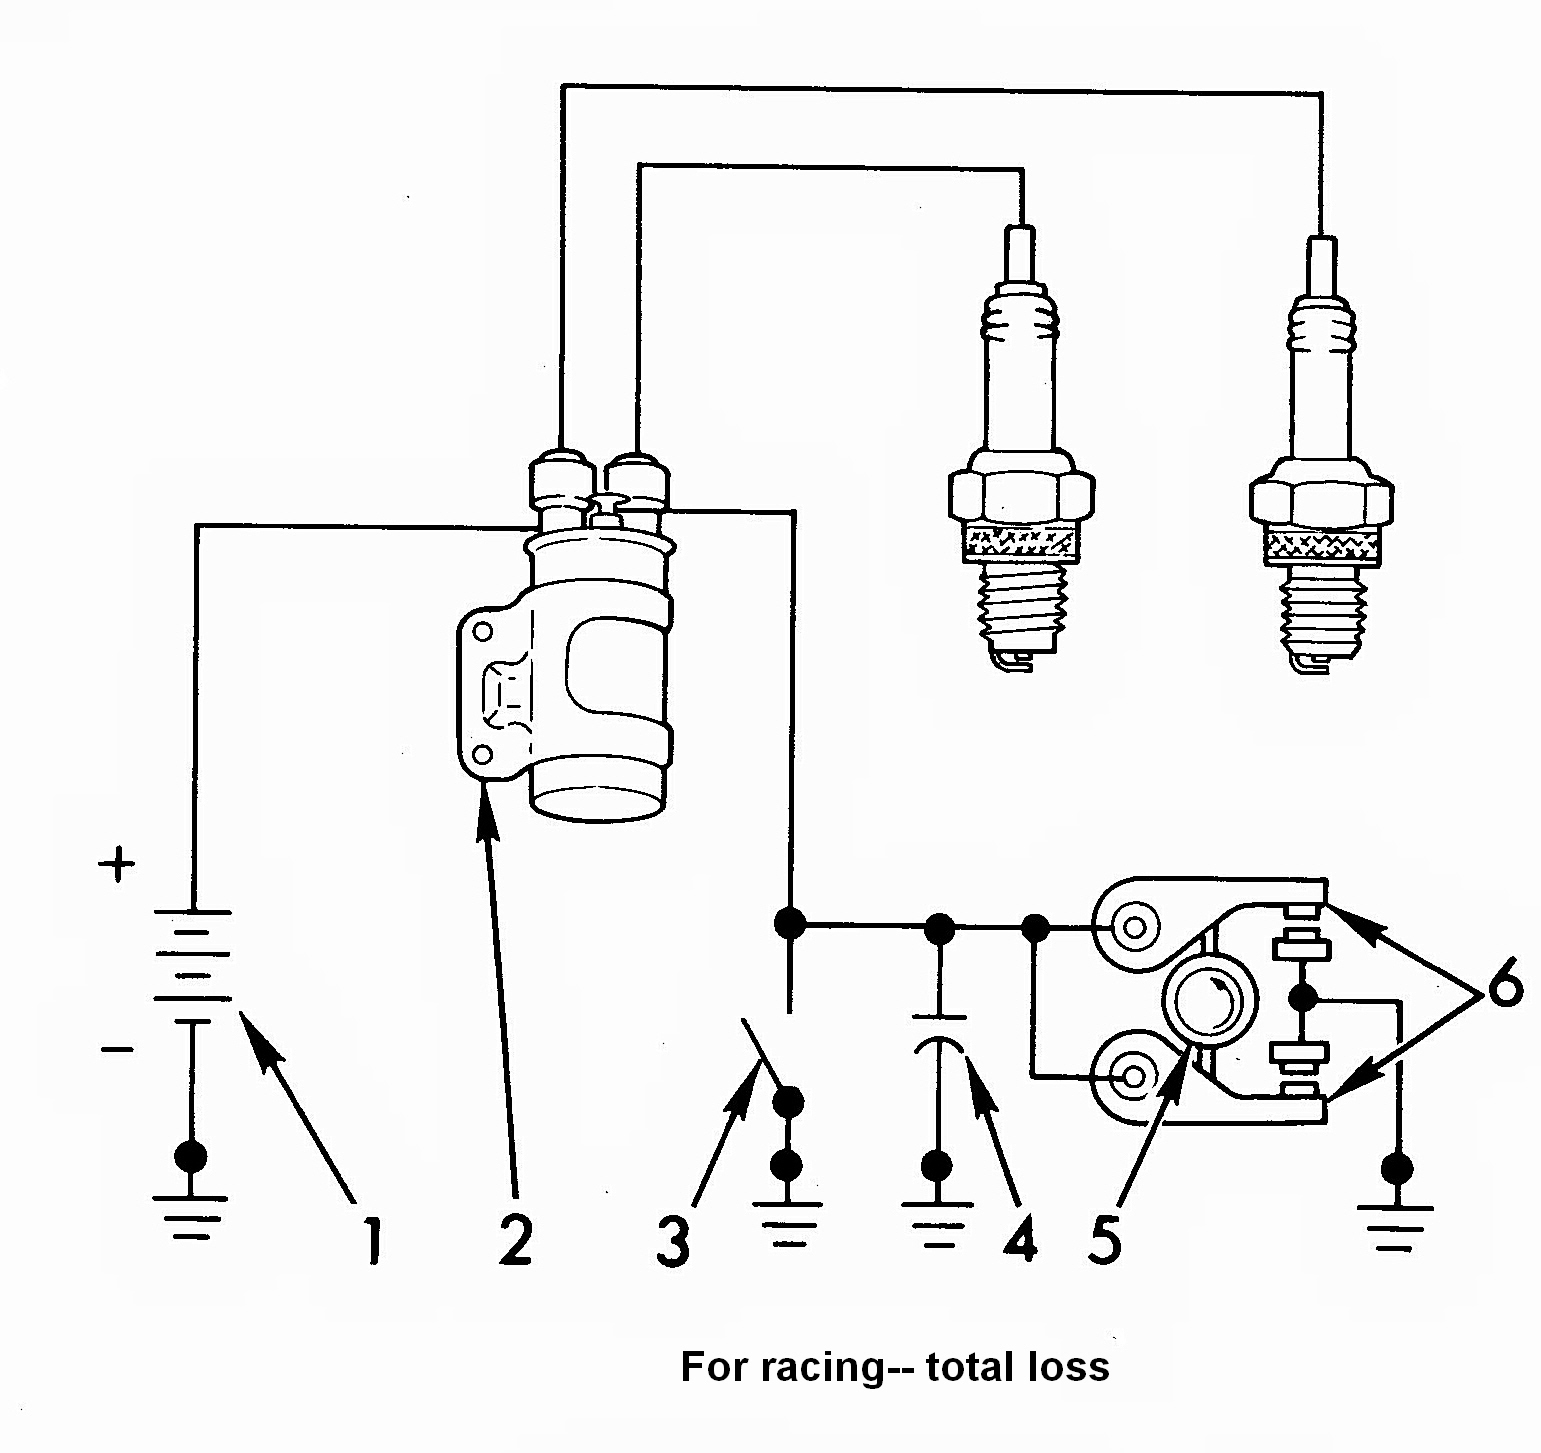 hight resolution of street racing wiring diagram parts list for dual fire coils and points